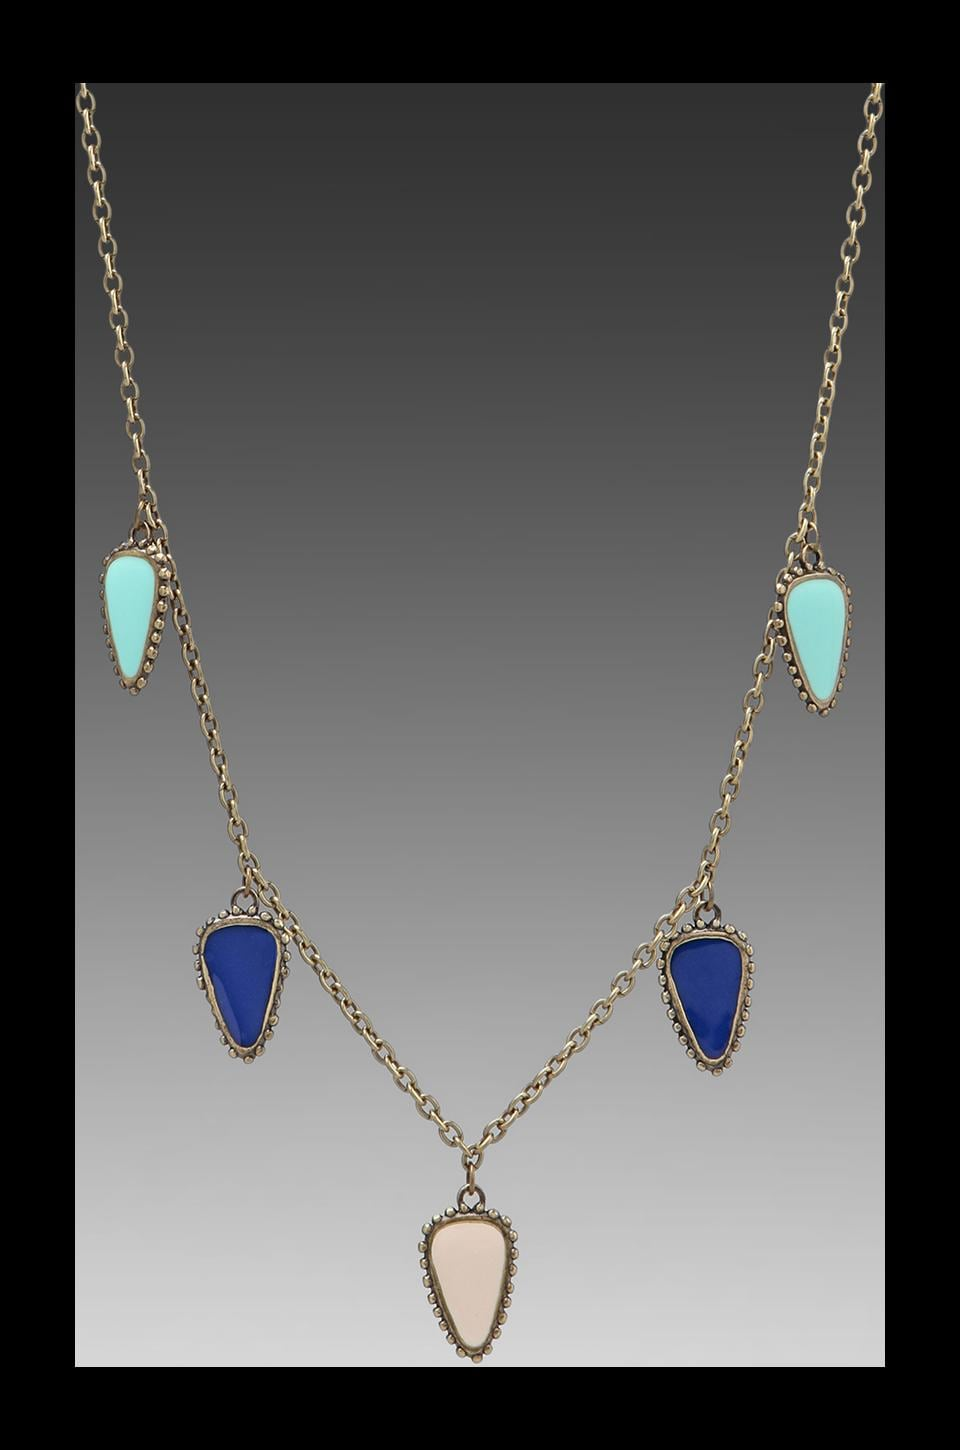 Dream Collective Small Arrowhead Amulet Necklace in Turquoise/Cobalt/White